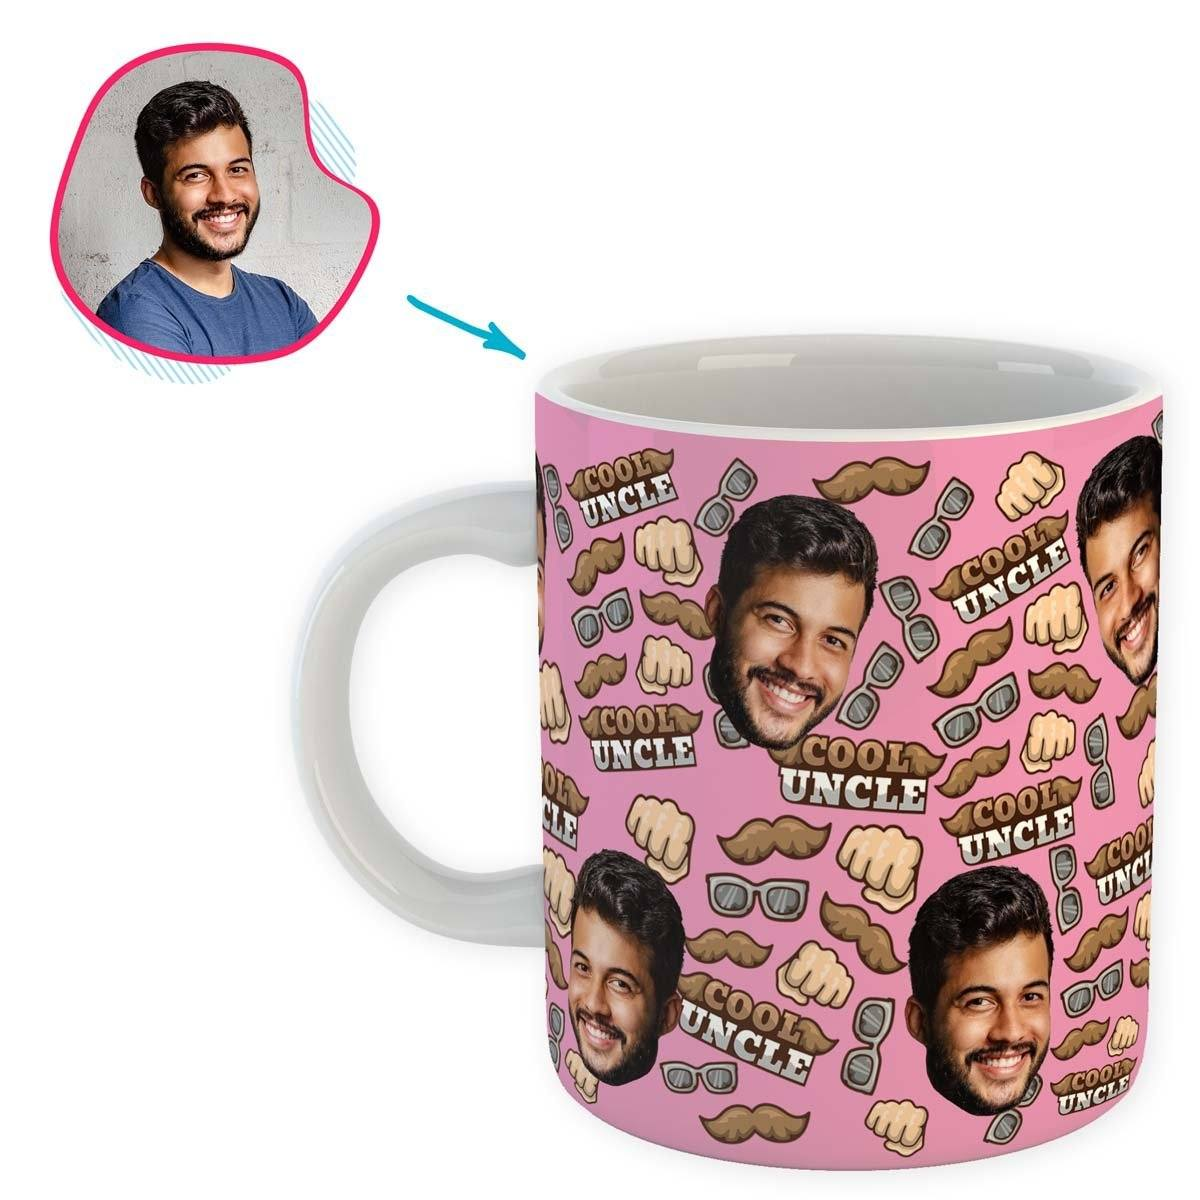 Pink Uncle personalized mug with photo of face printed on it